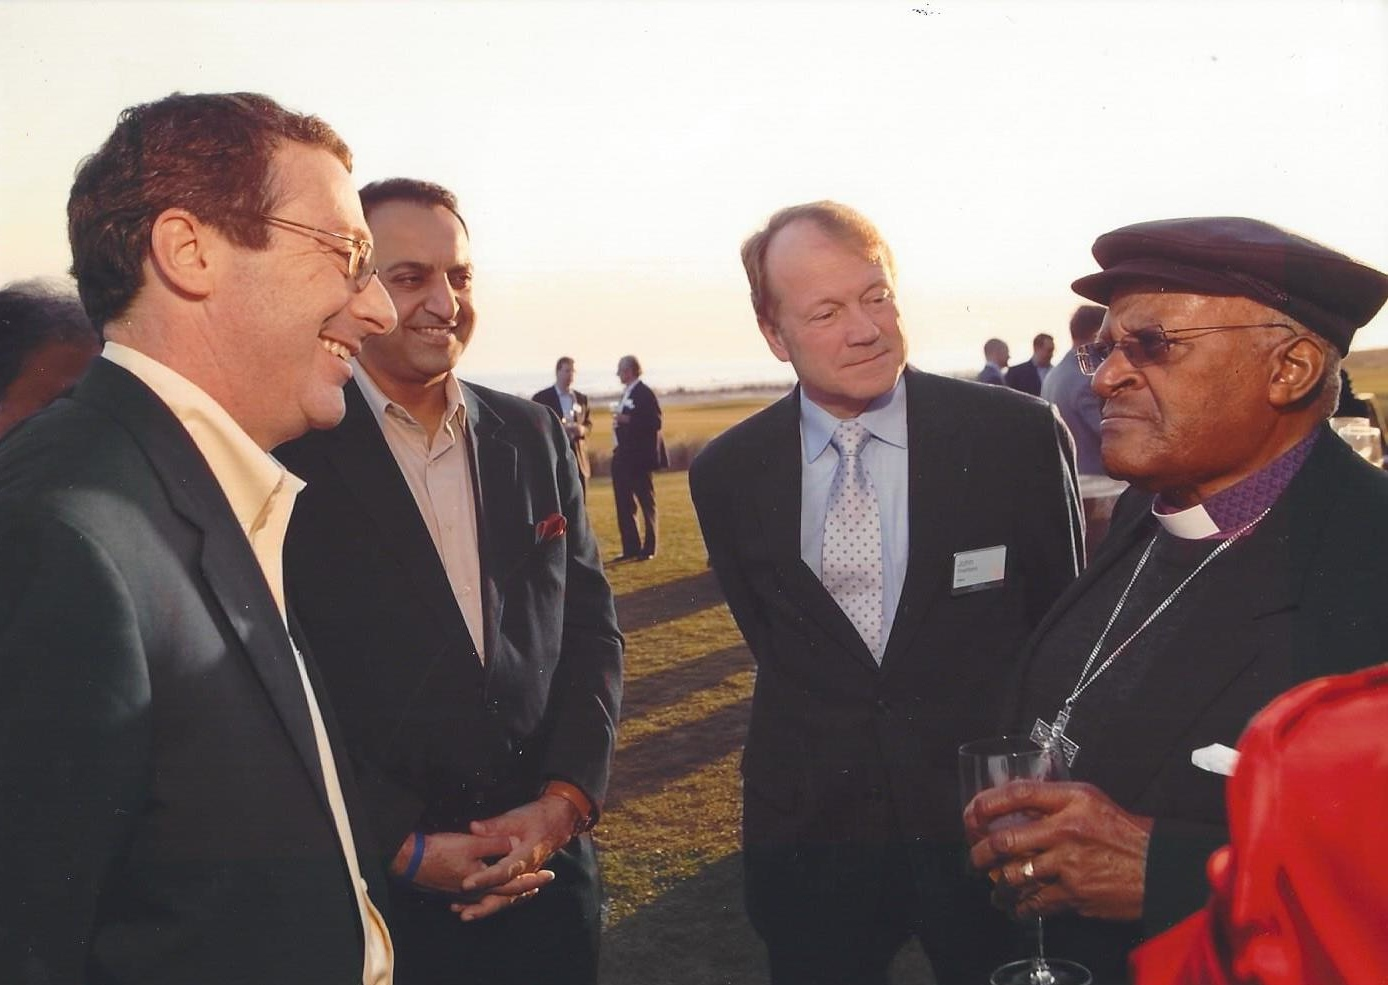 Chatting with Desmond Tutu, Cisco CEO John Chambers and BBC Broadcaster Riz Khan at a CEO summit.